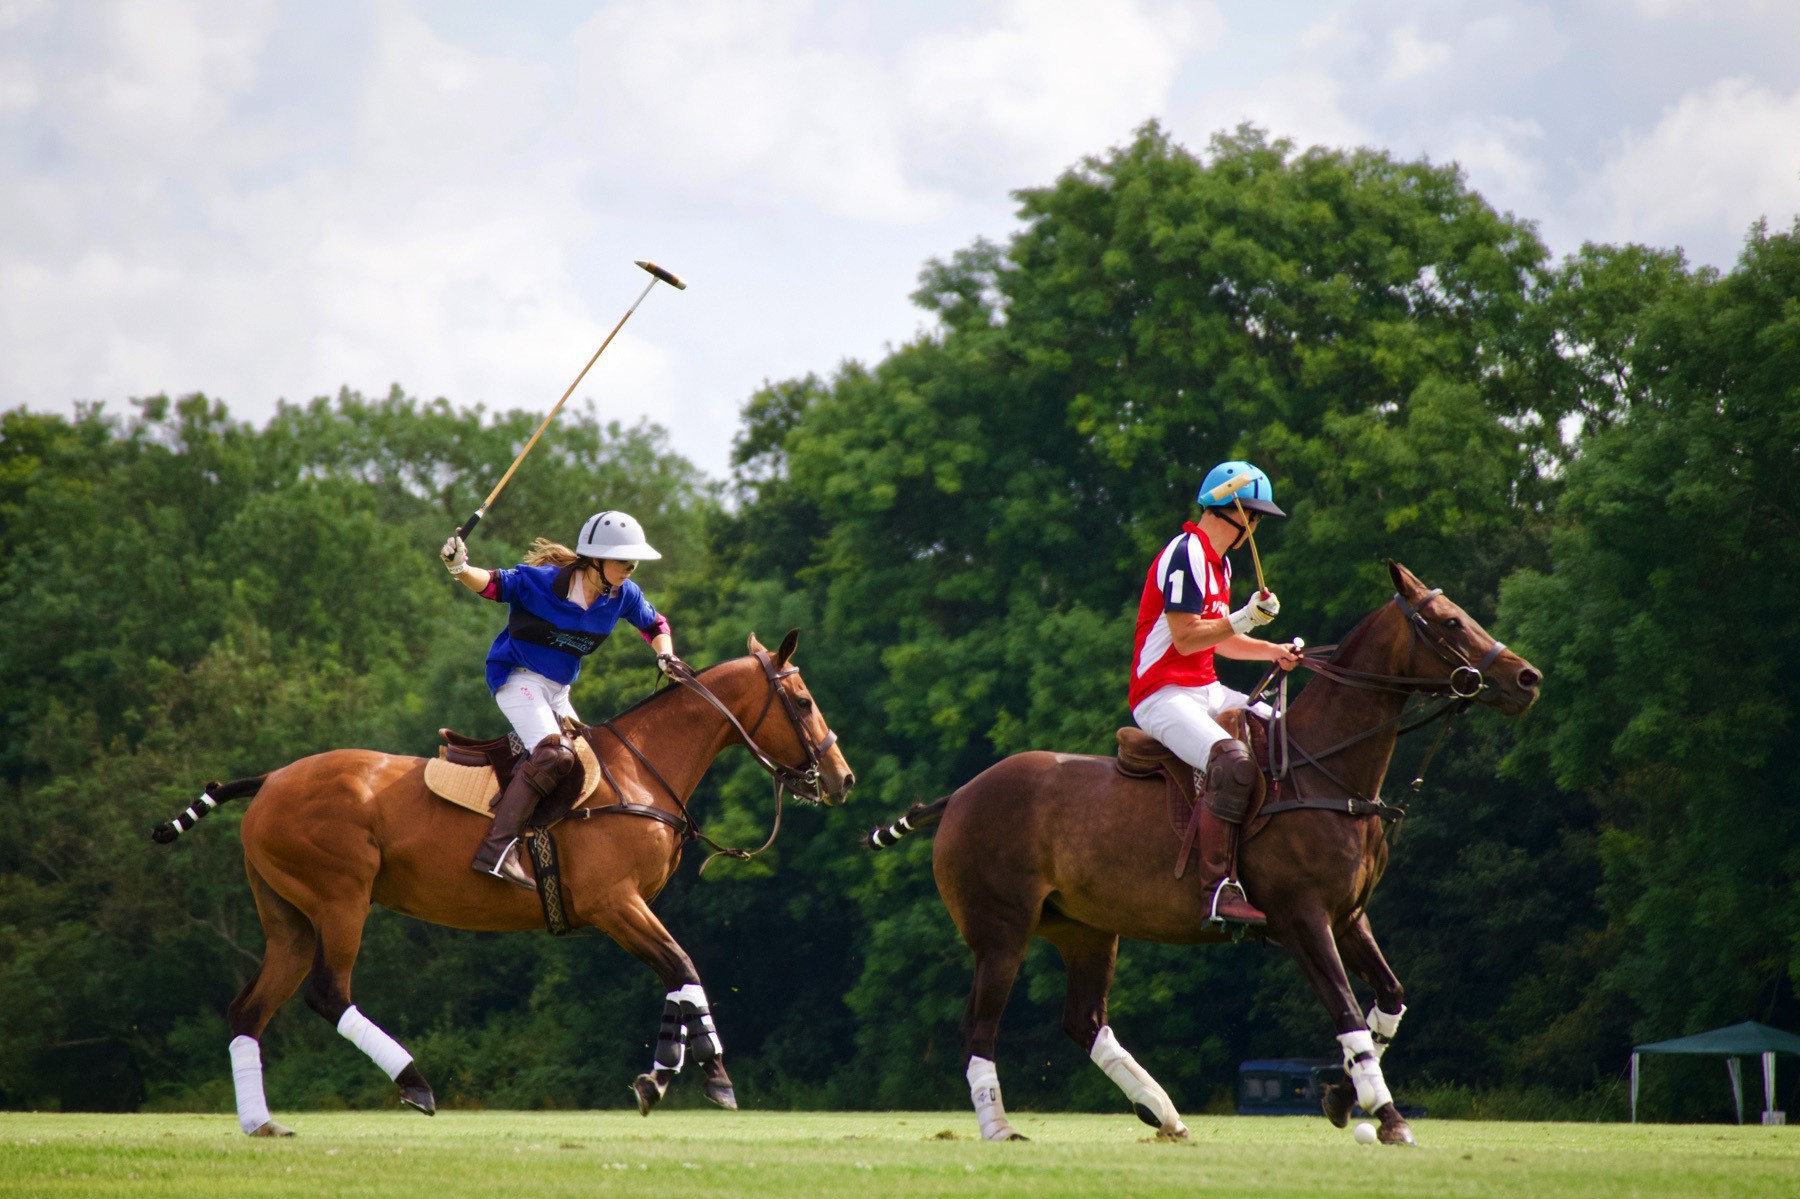 A polo match in progress.